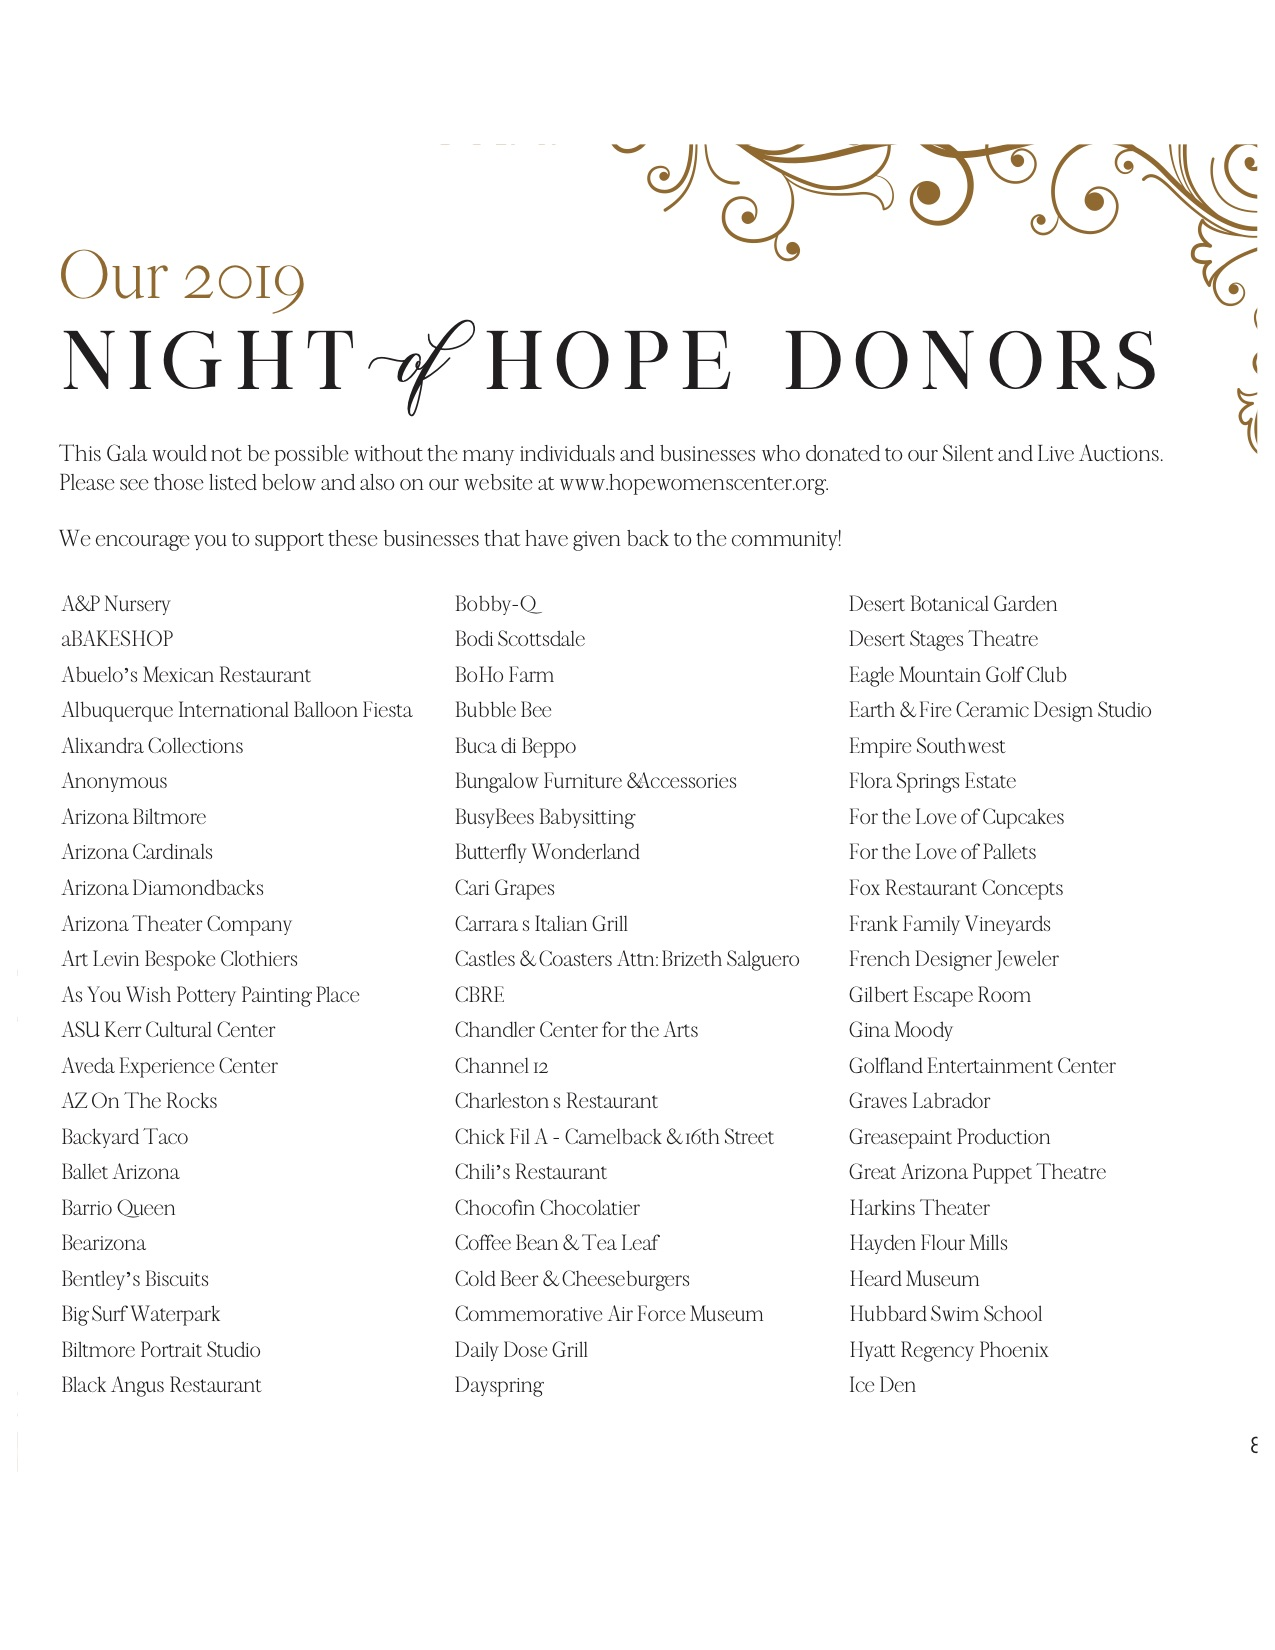 NOH Auction Donors 2019